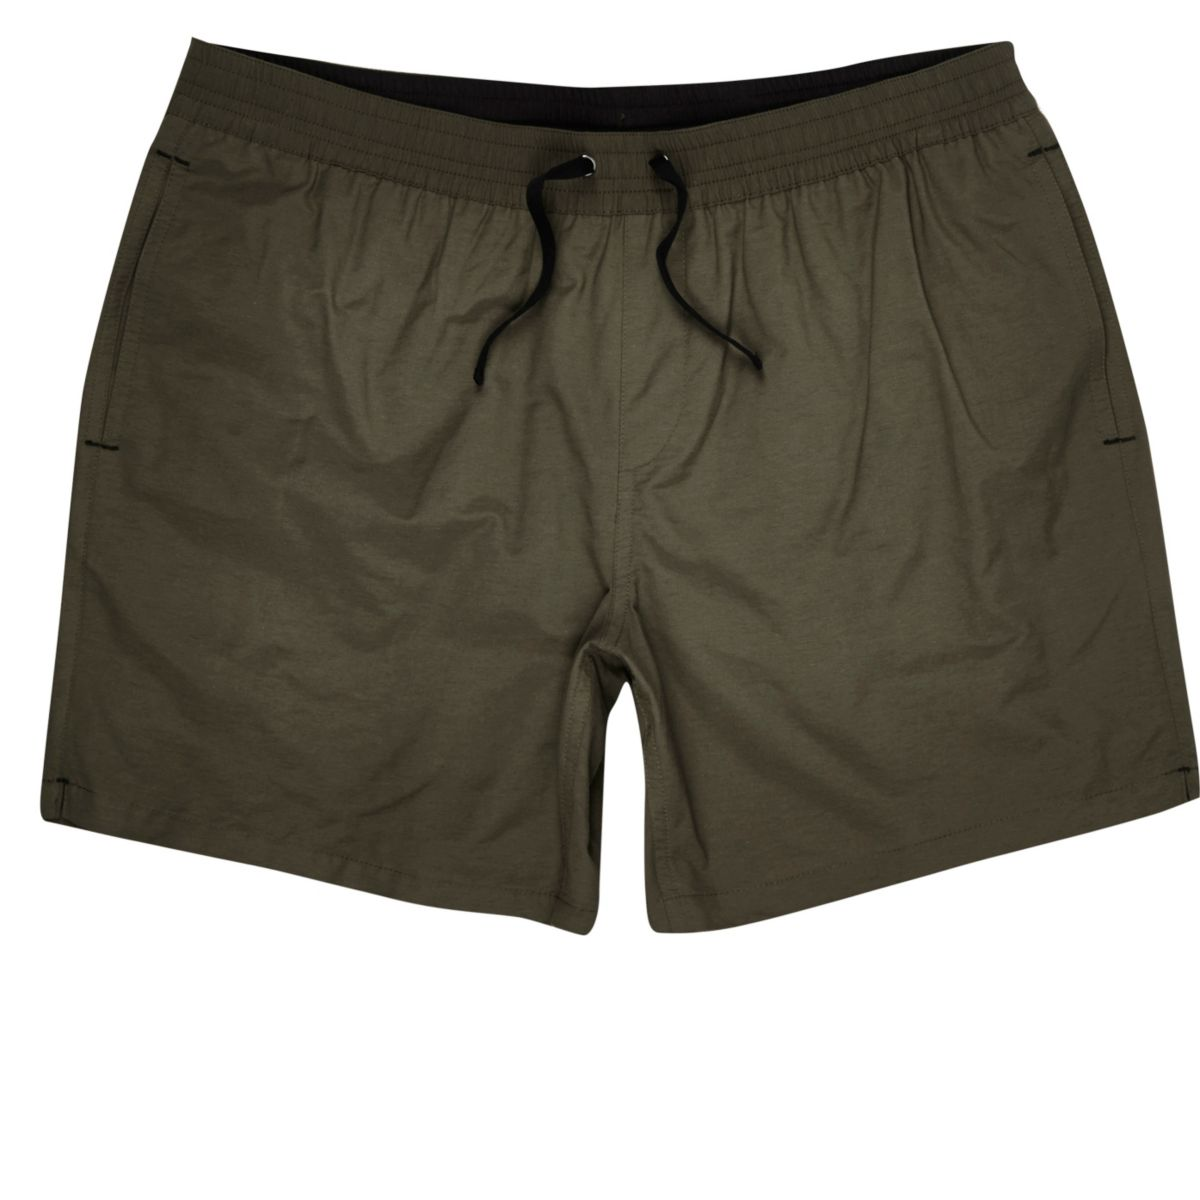 Shop eBay for great deals on Army Khaki, Chino Shorts for Men. You'll find new or used products in Army Khaki, Chino Shorts for Men on eBay. Free shipping on selected items.